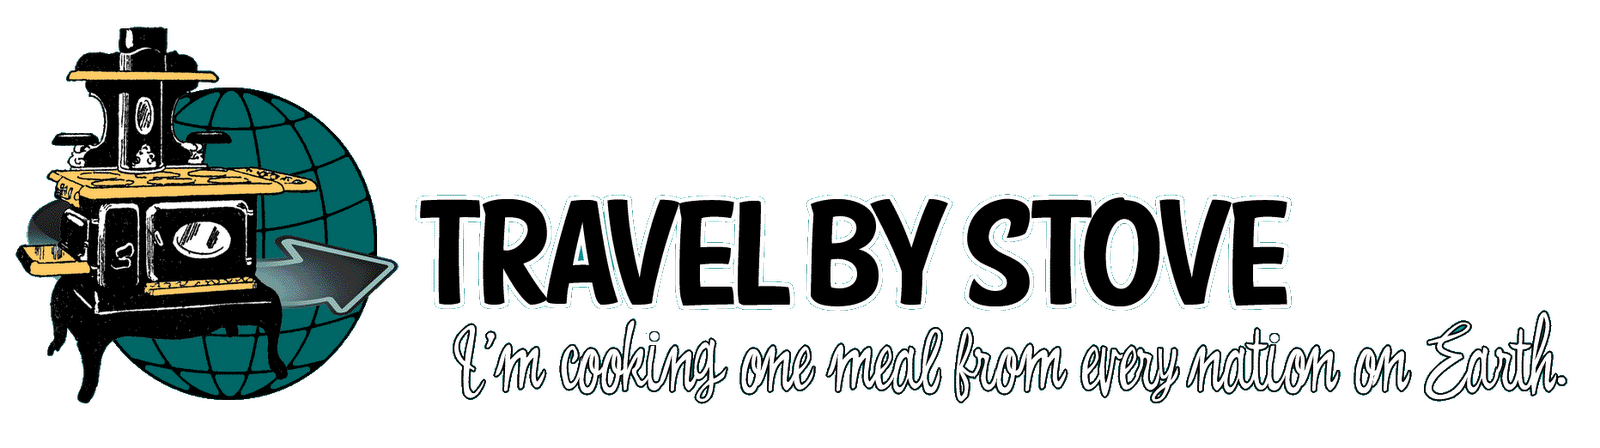 Travel by Stove